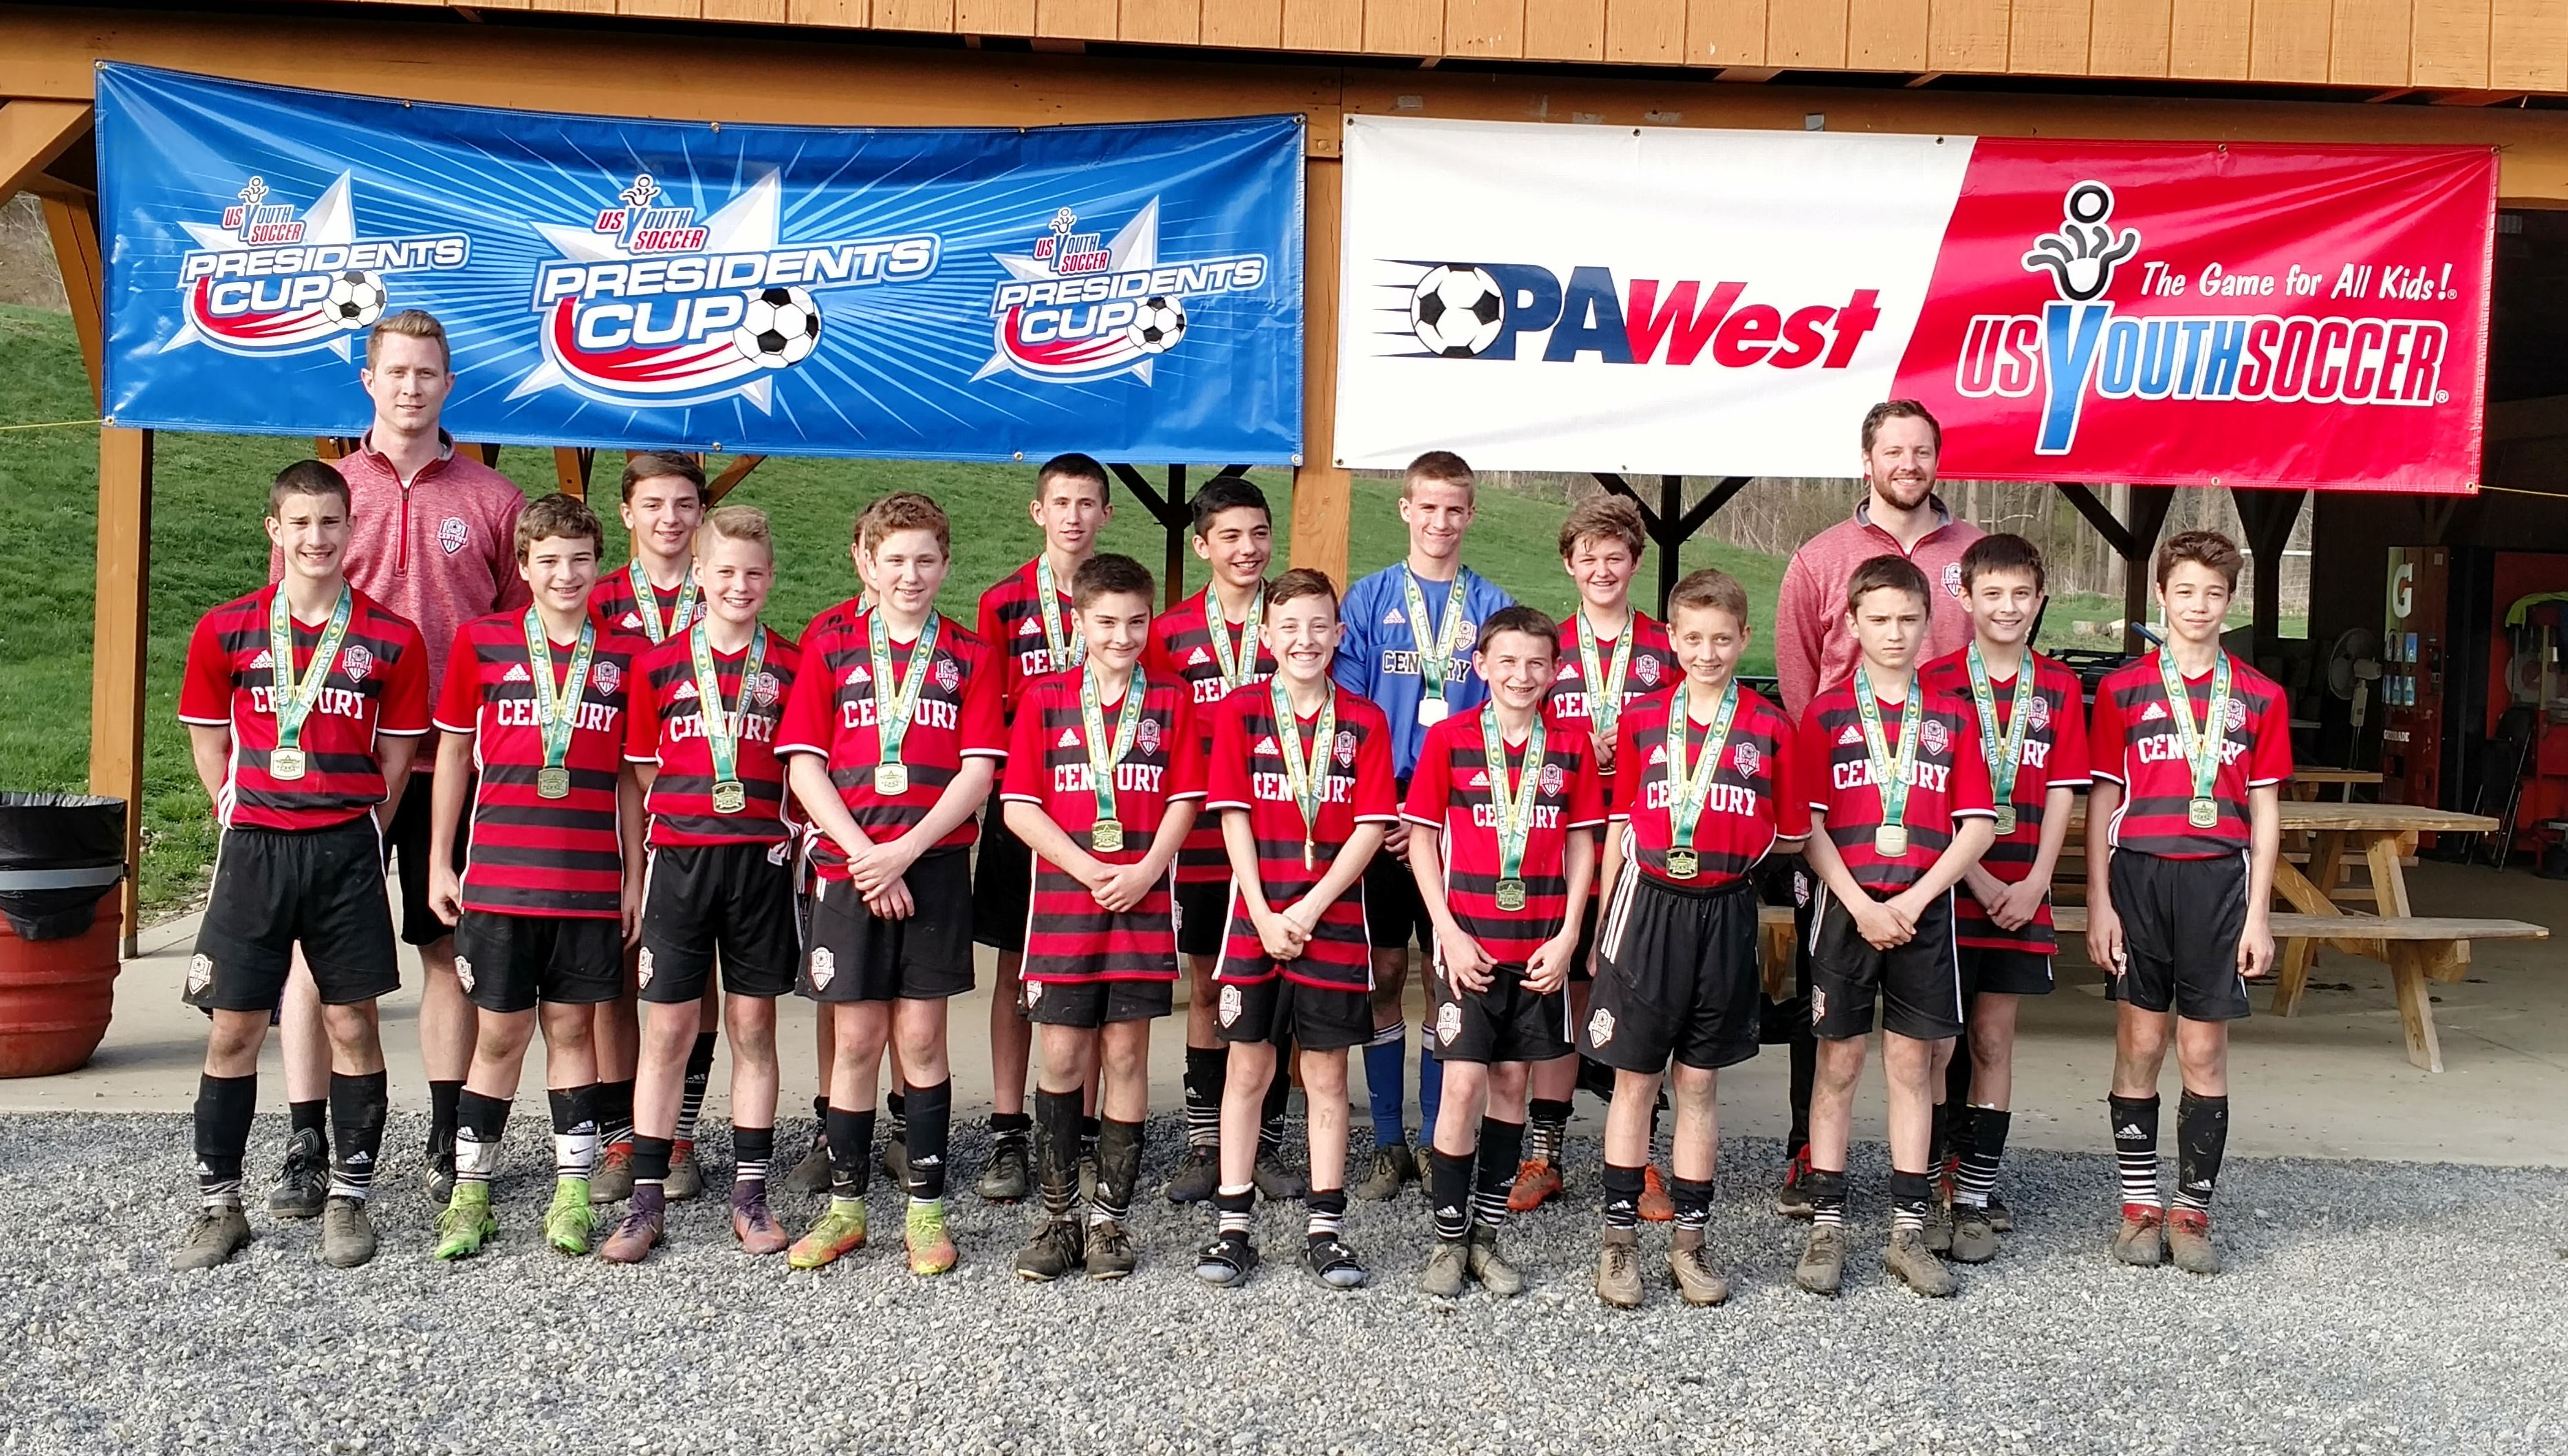 Century 2003 Boys Red team win PaWest Presidents Cup